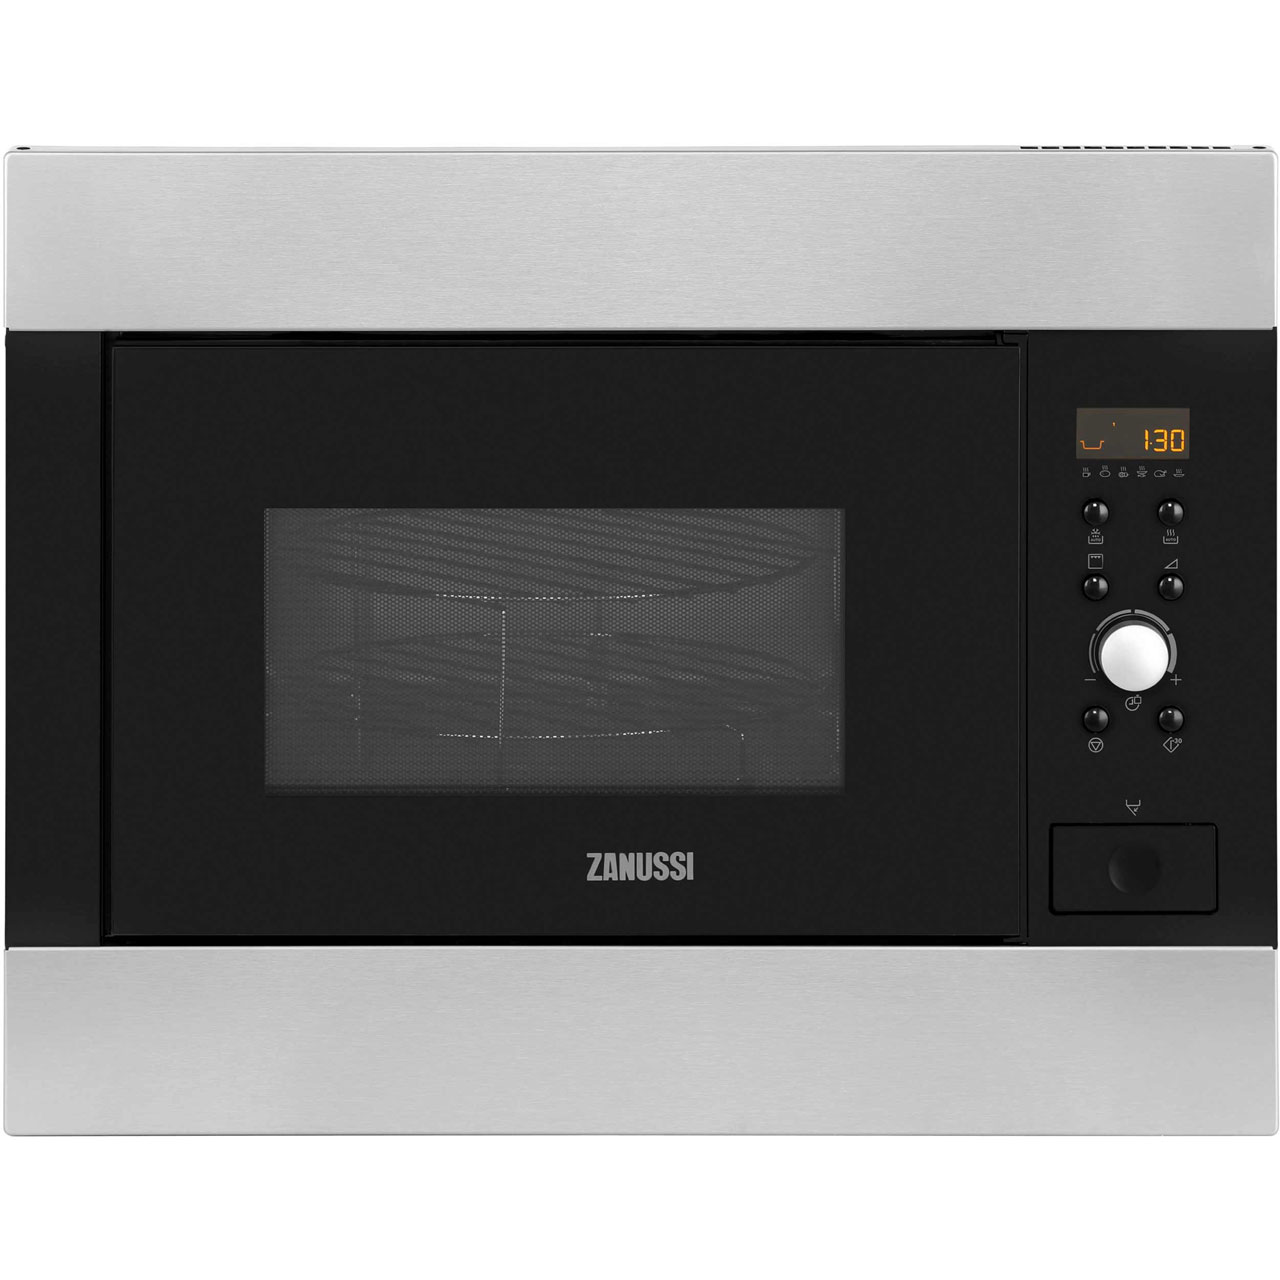 Zanussi ZBG26542XA Integrated Microwave Oven in Stainless Steel